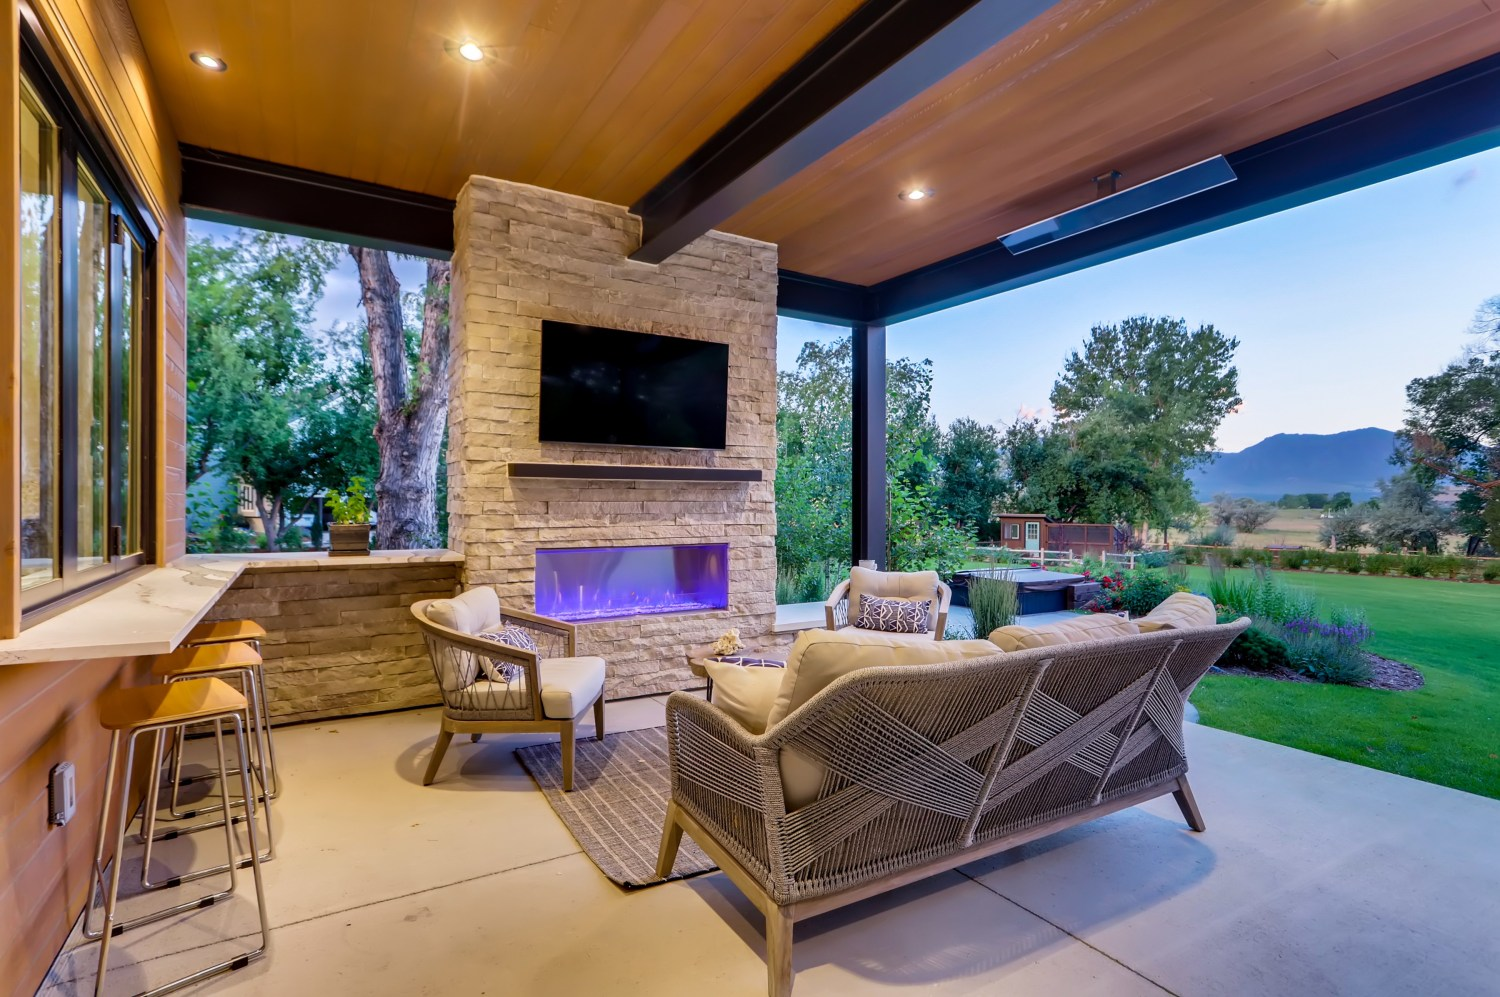 Outdoor living with fireplace and TV